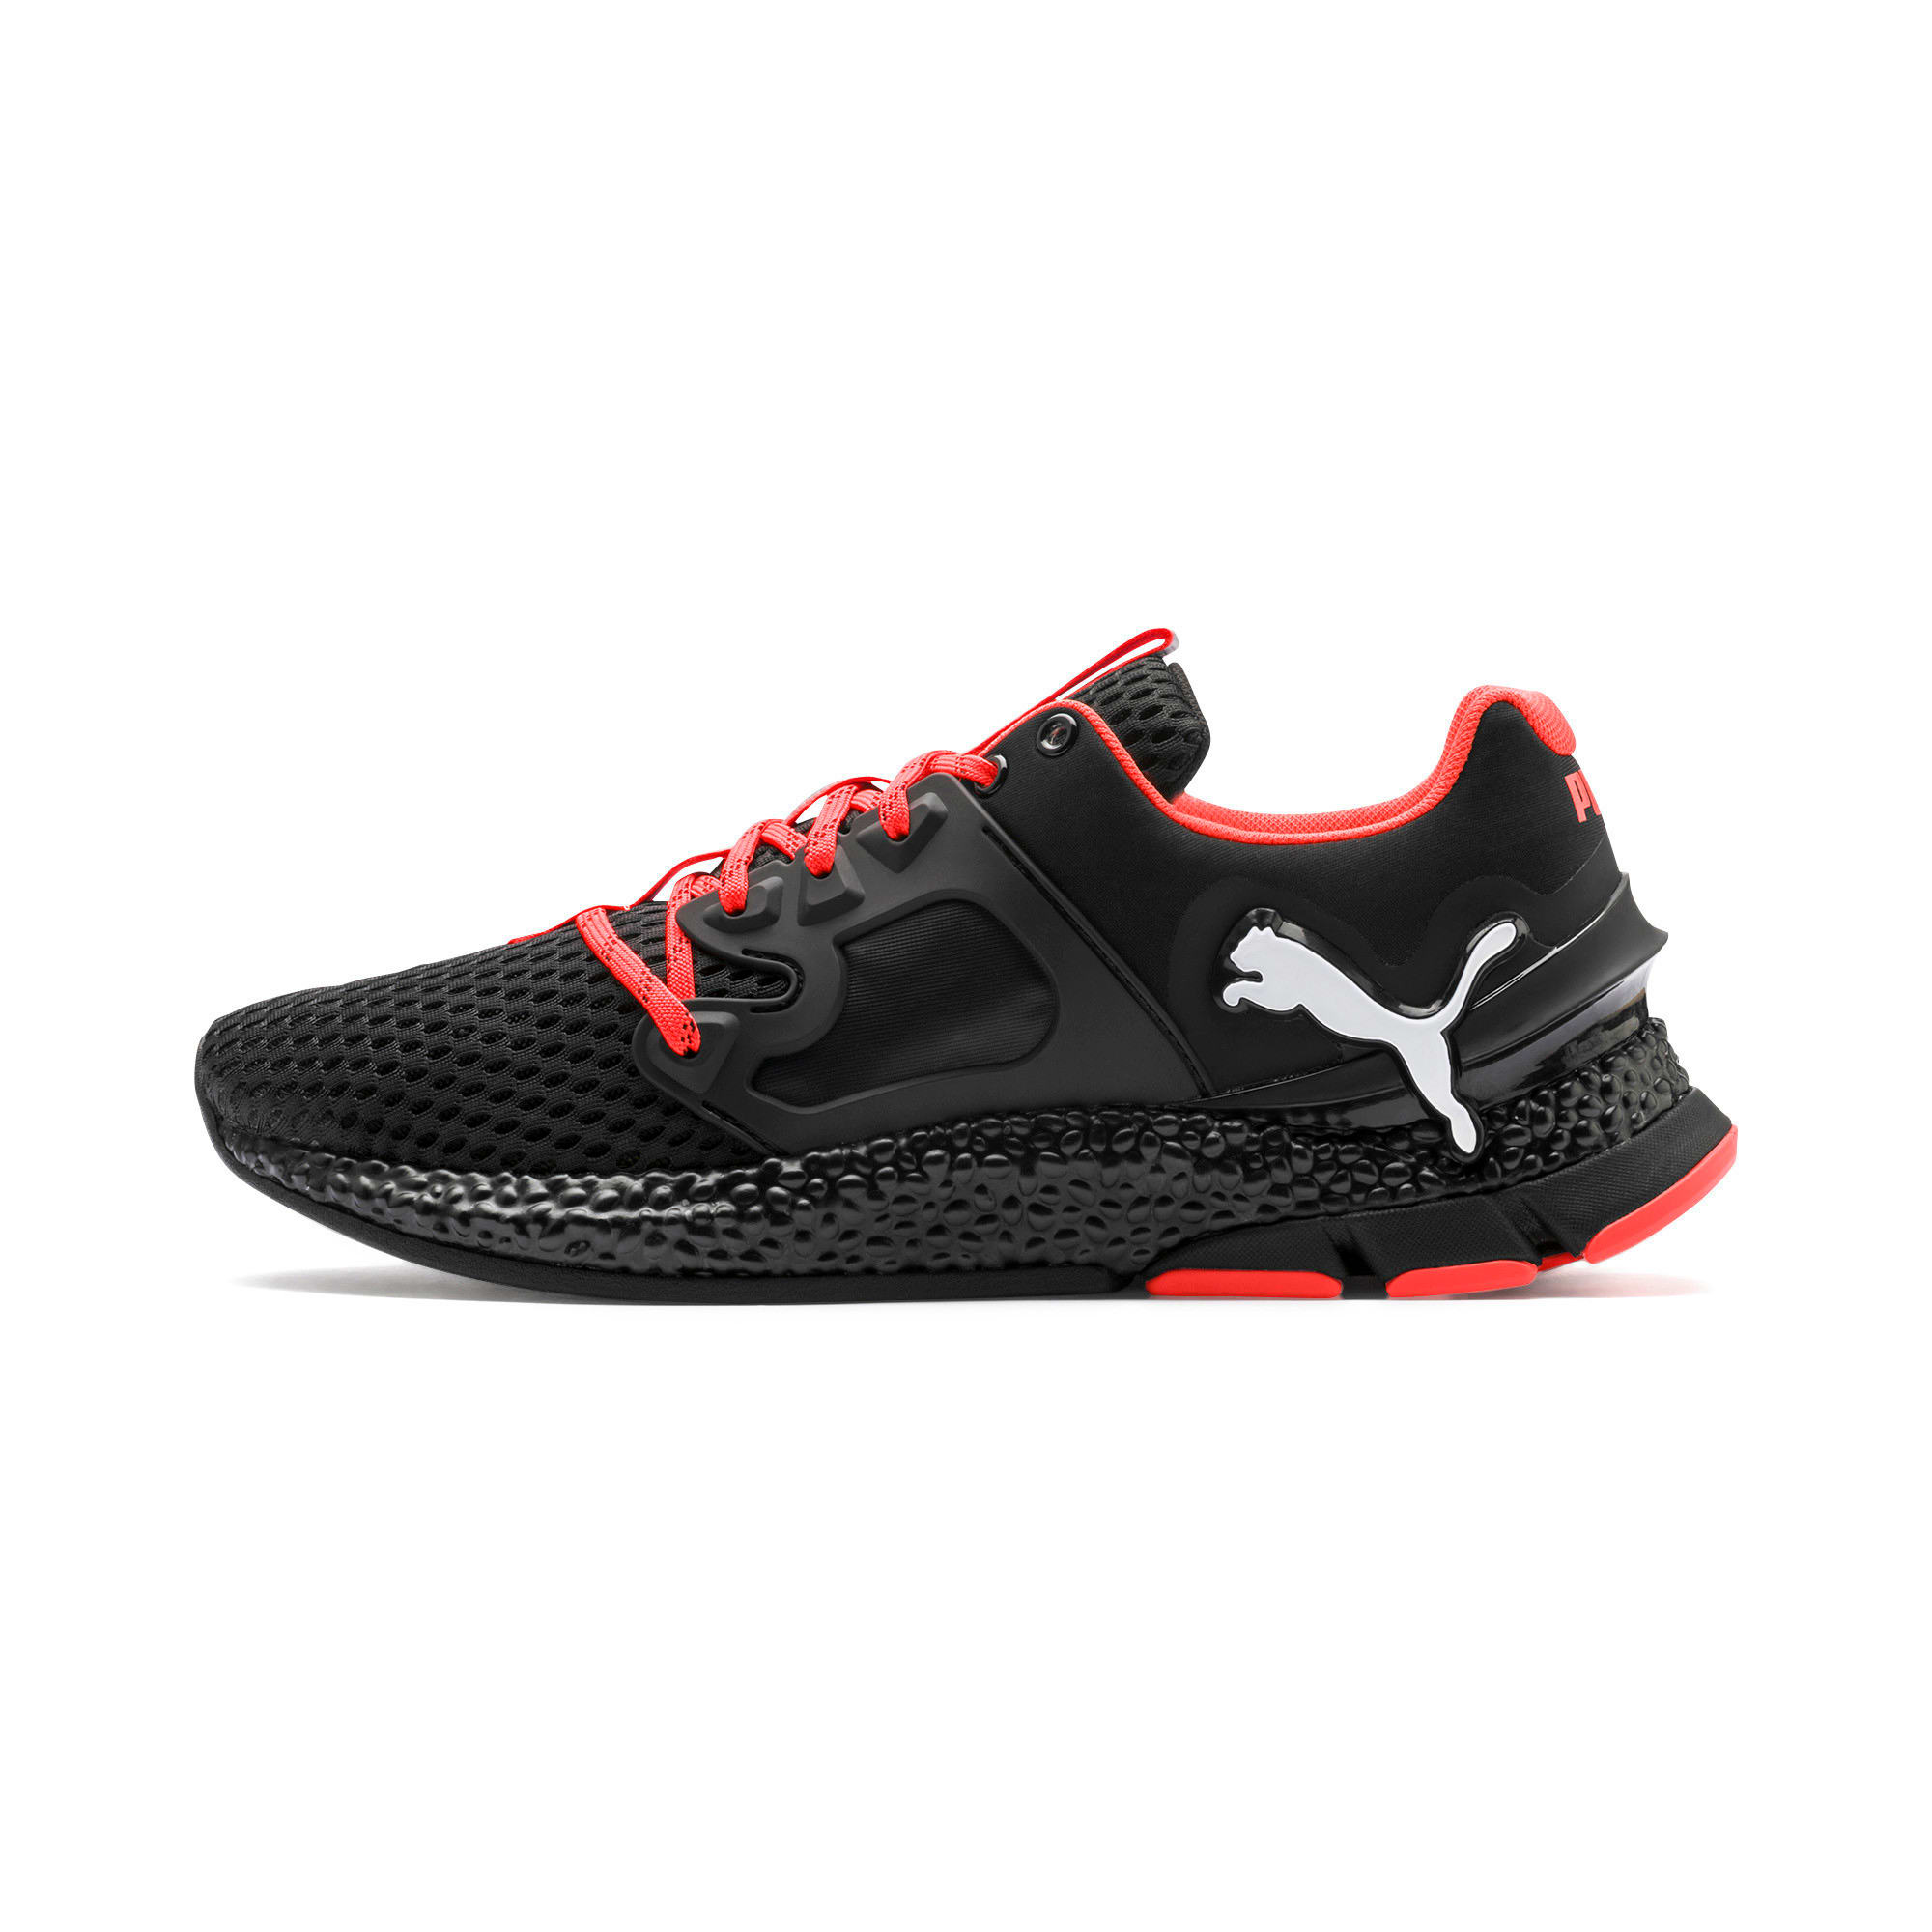 Thumbnail 1 of HYBRID Sky Men's Running Shoes, Black-White-Nrgy Red, medium